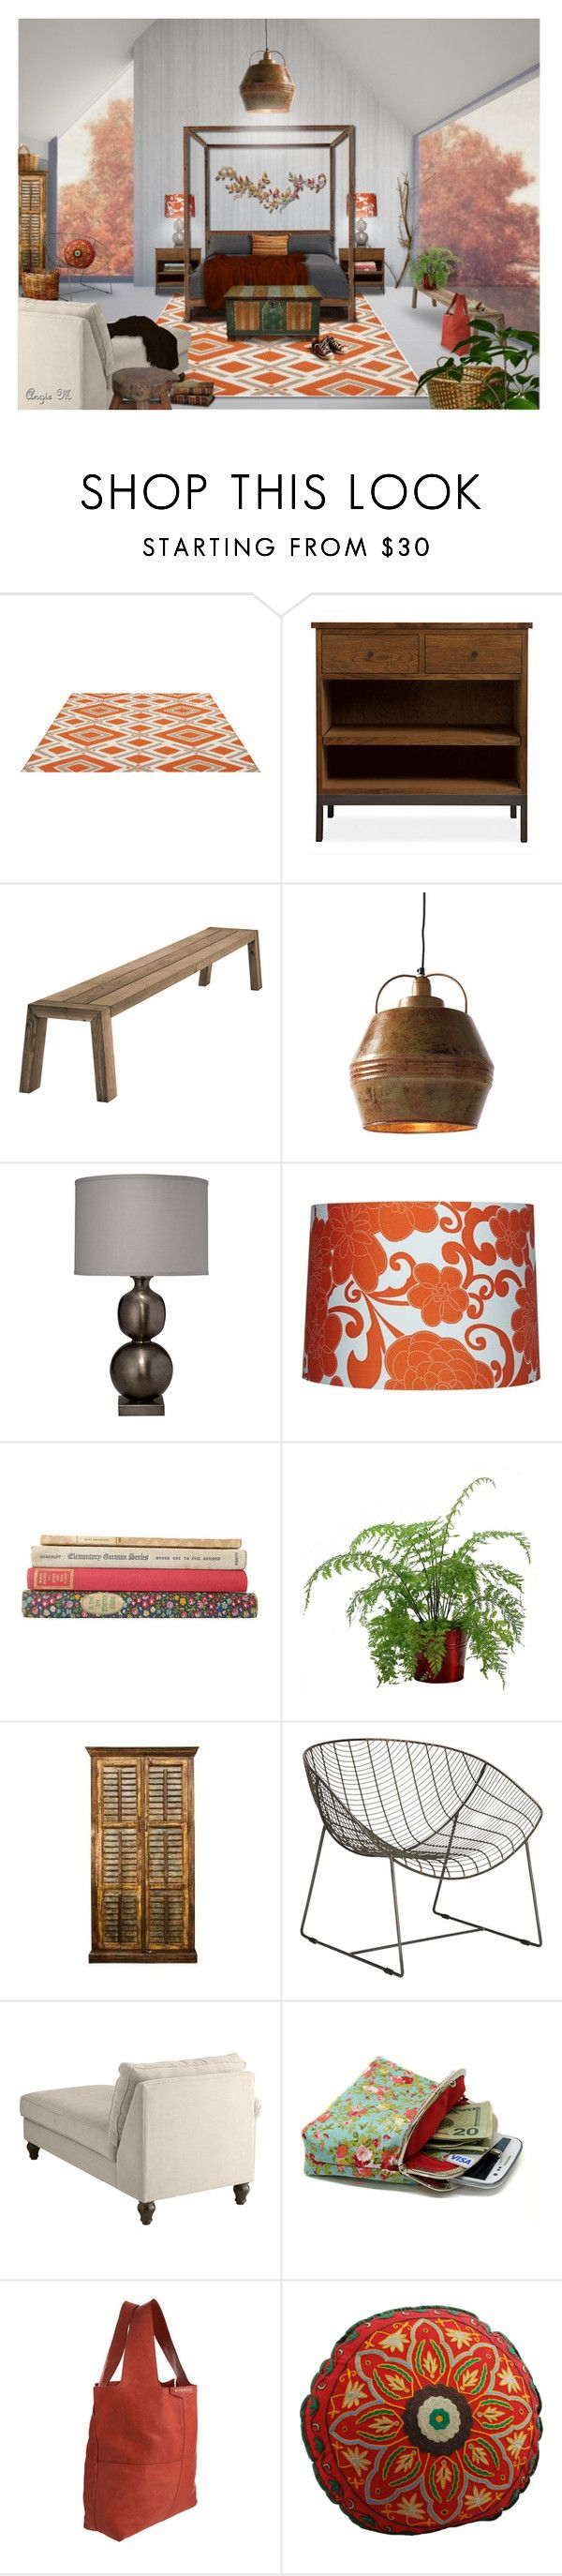 """Country Casual"" by angiem ❤ liked on Polyvore featuring interior, interiors, interior design, home, home decor, interior decorating, Jill Rosenwald, Viteo, Jamie Young and CB2"